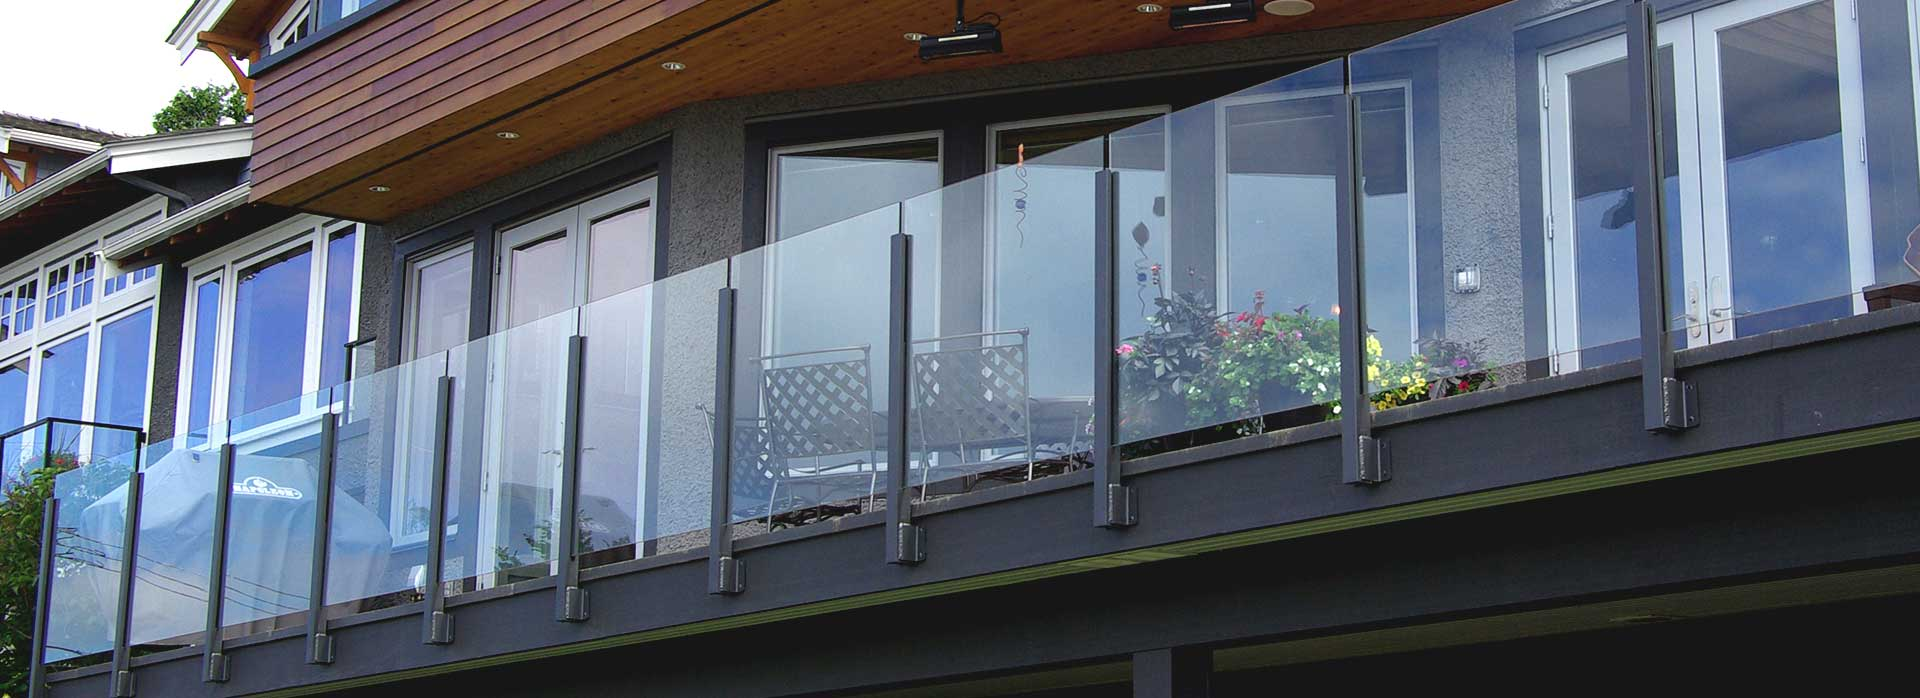 Deck railing overview on our aluminum railing systems for Balcony decking